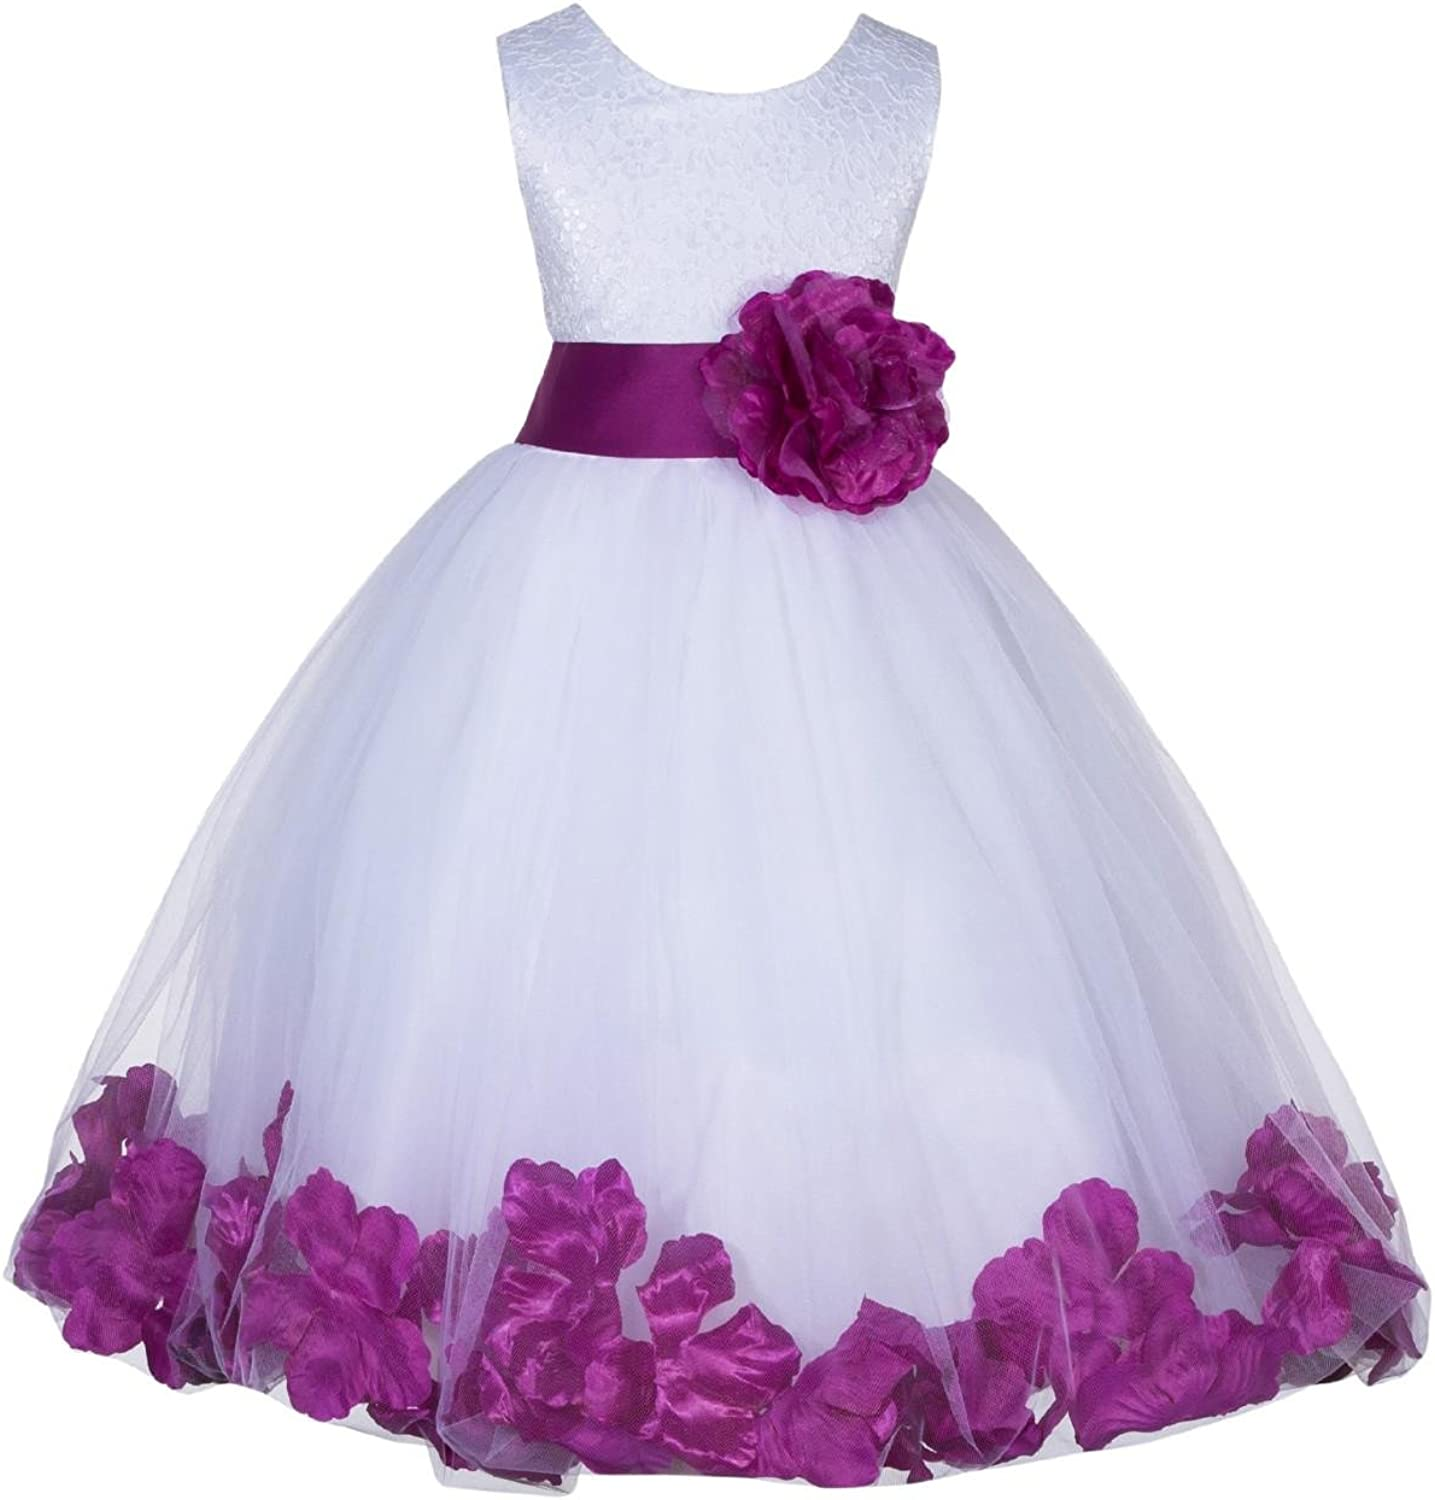 White Lace Top Tulle Floral Petals Flower Girl Dress Junior Pageant Gown 165T